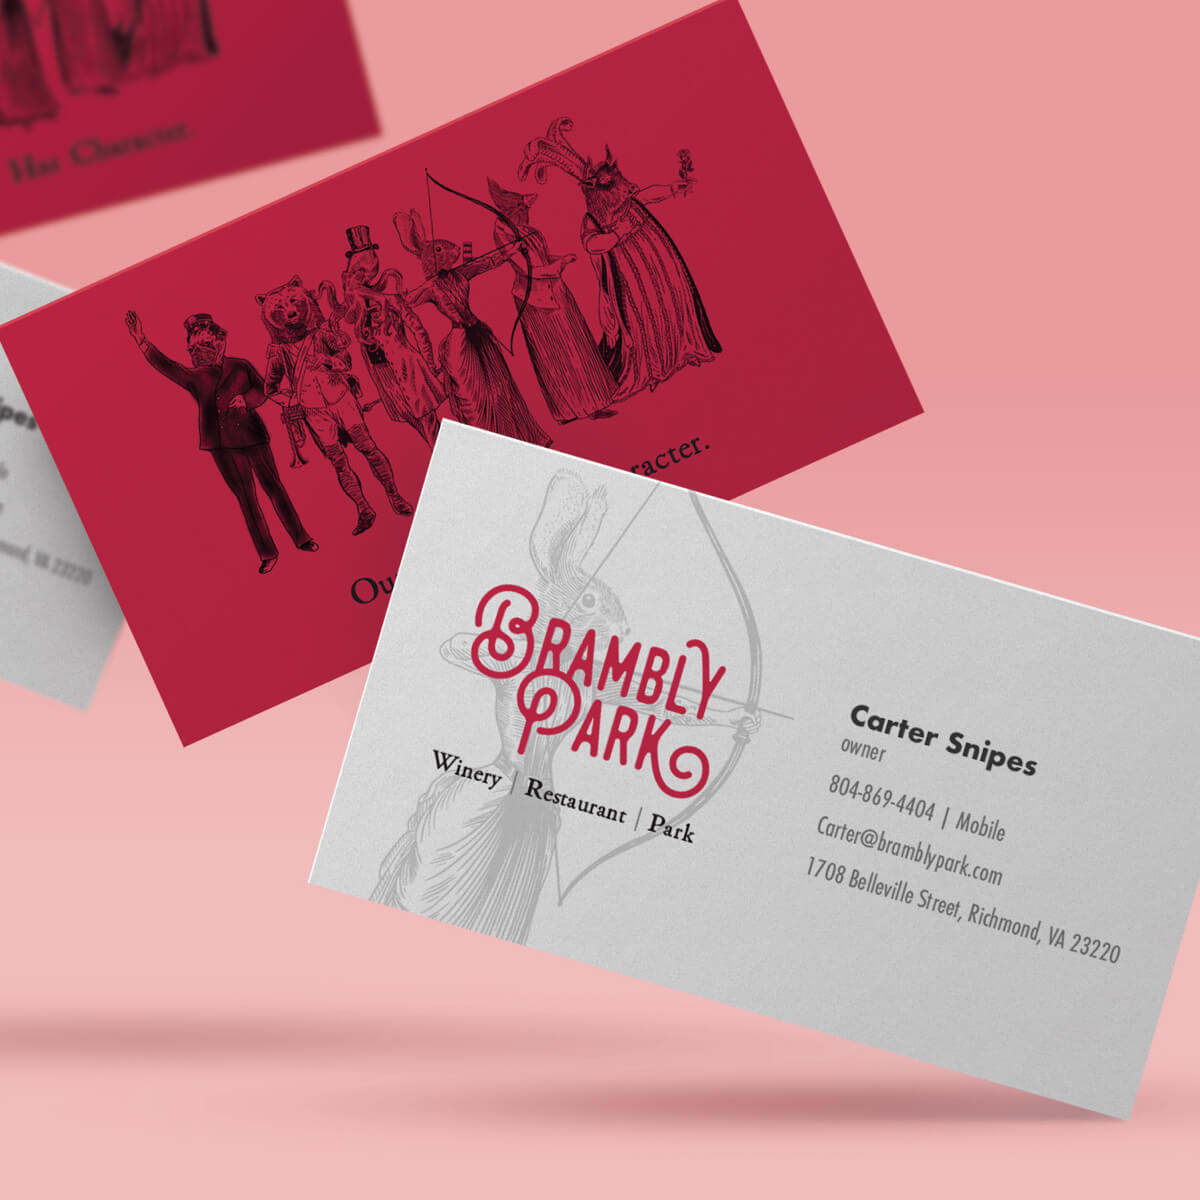 Brambly business card